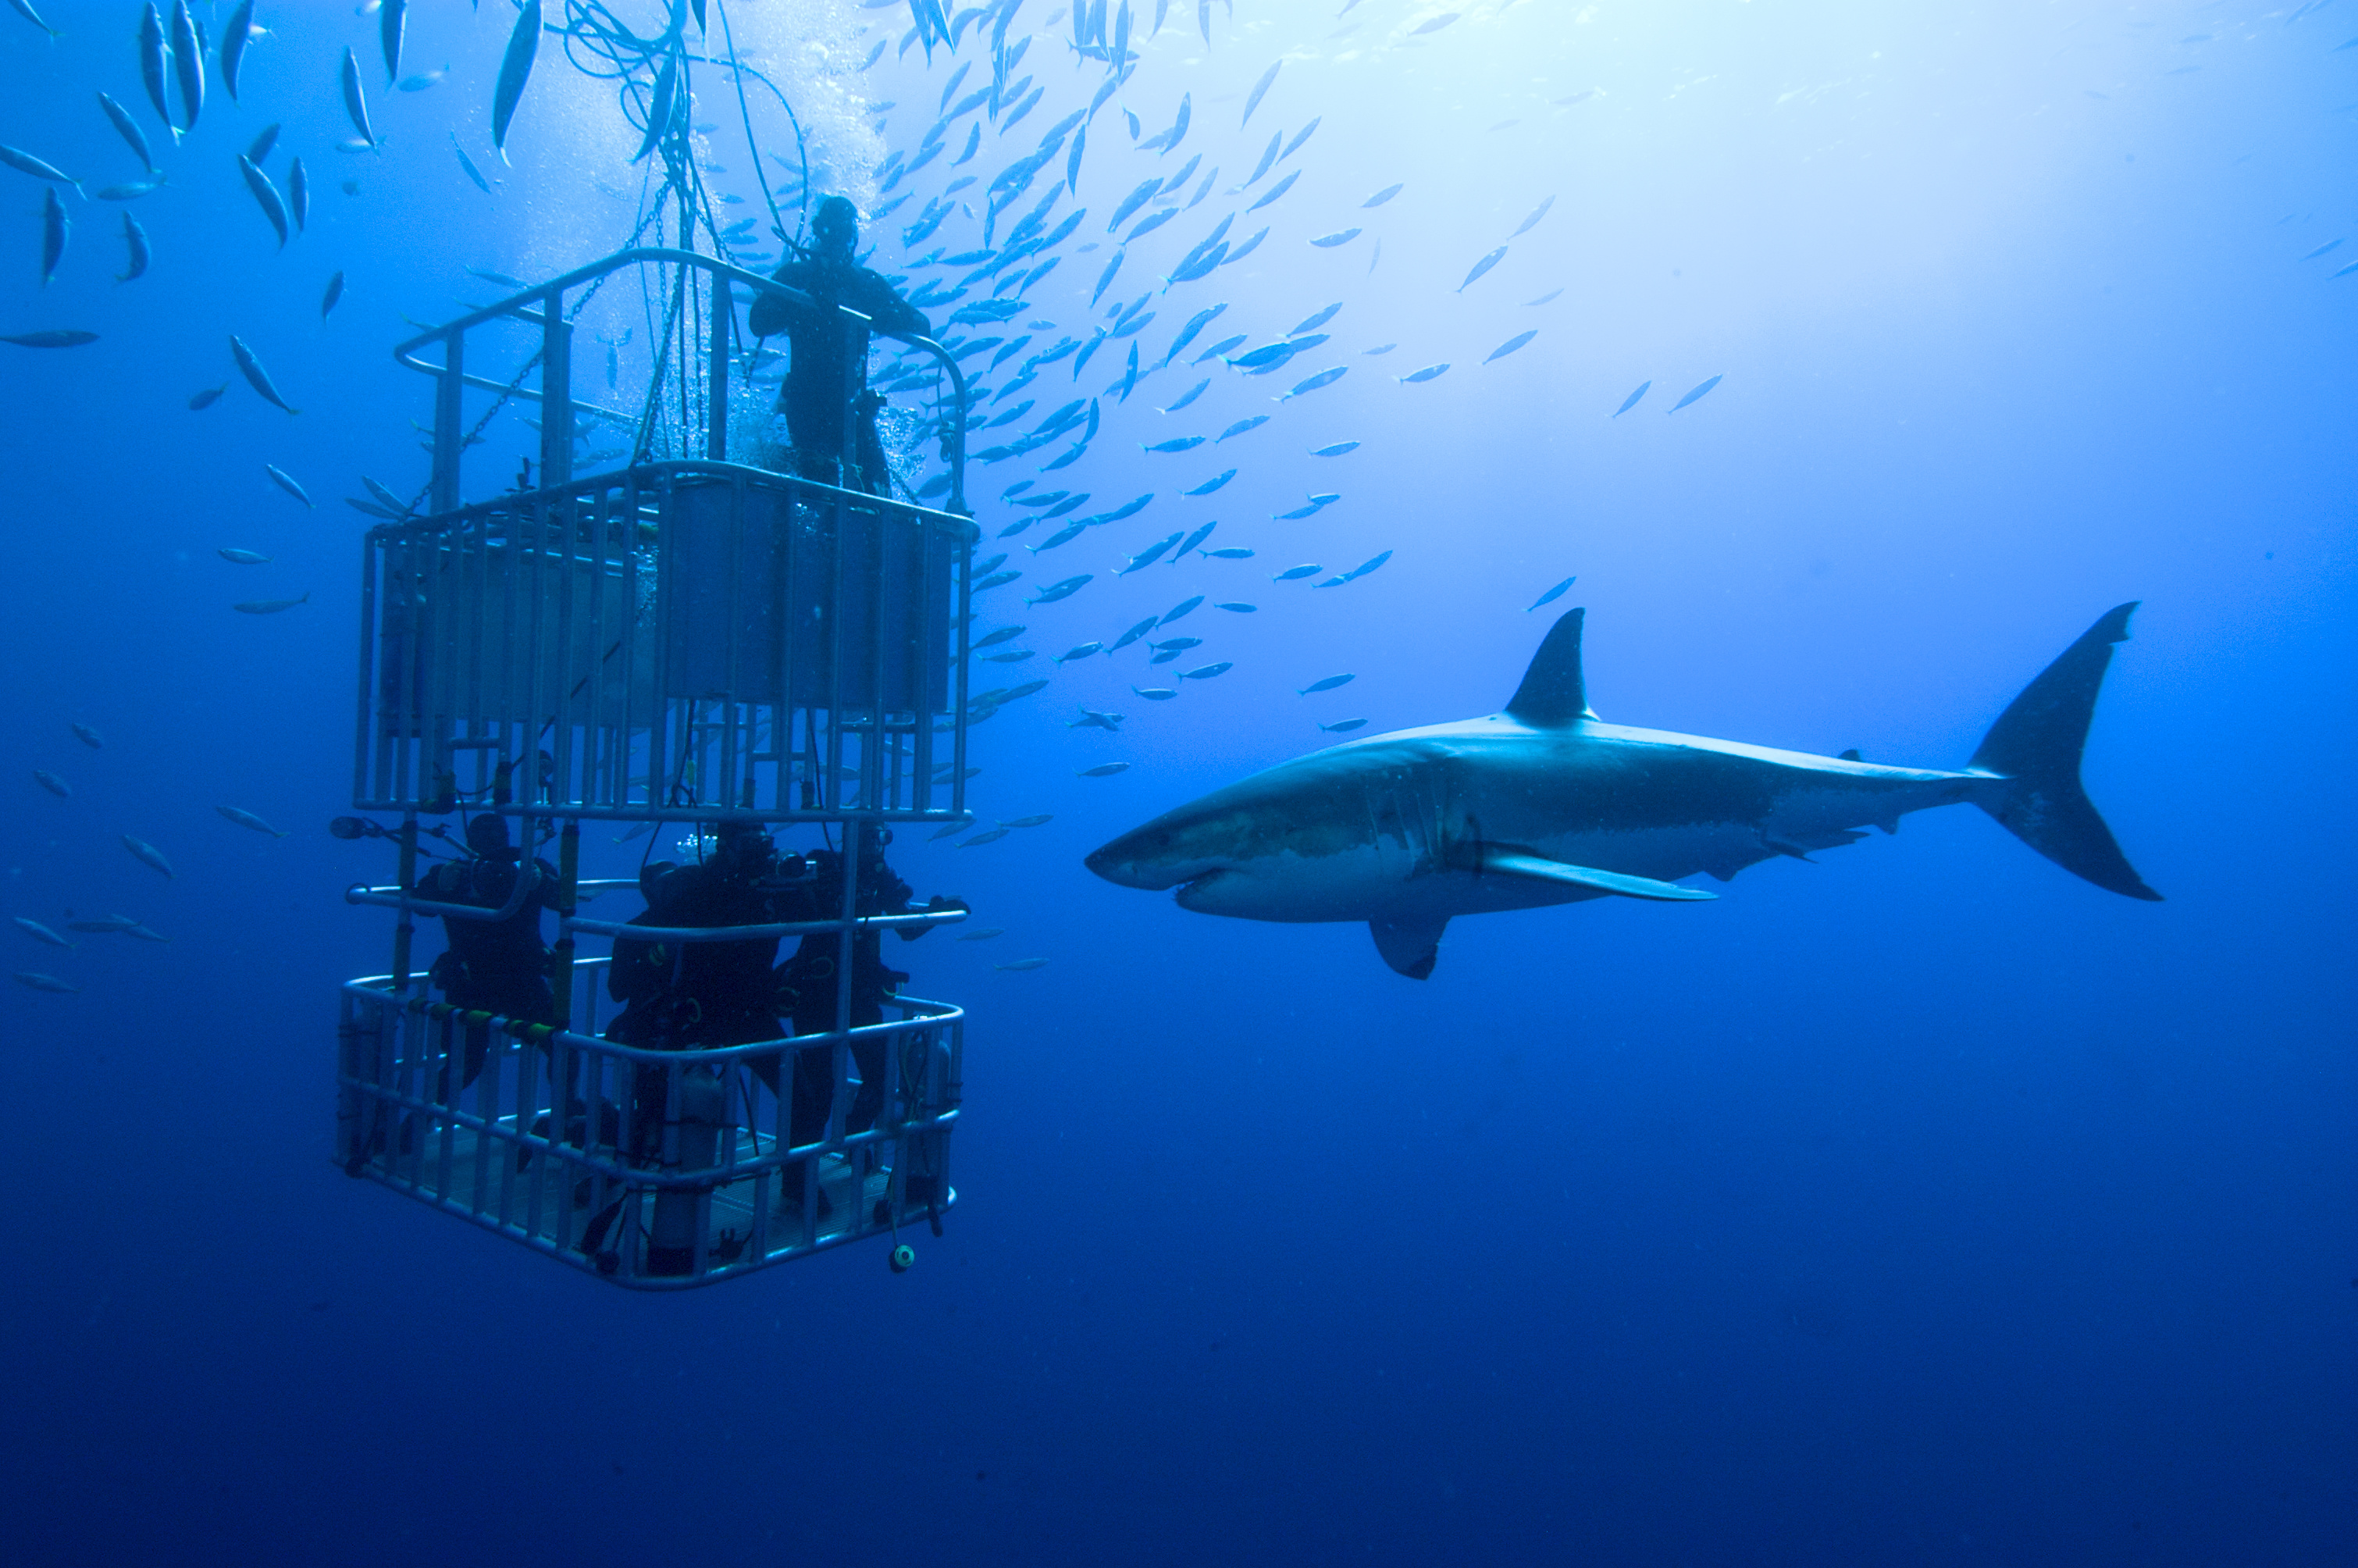 A Group of Divers Watching a Shark from a Diving Cage